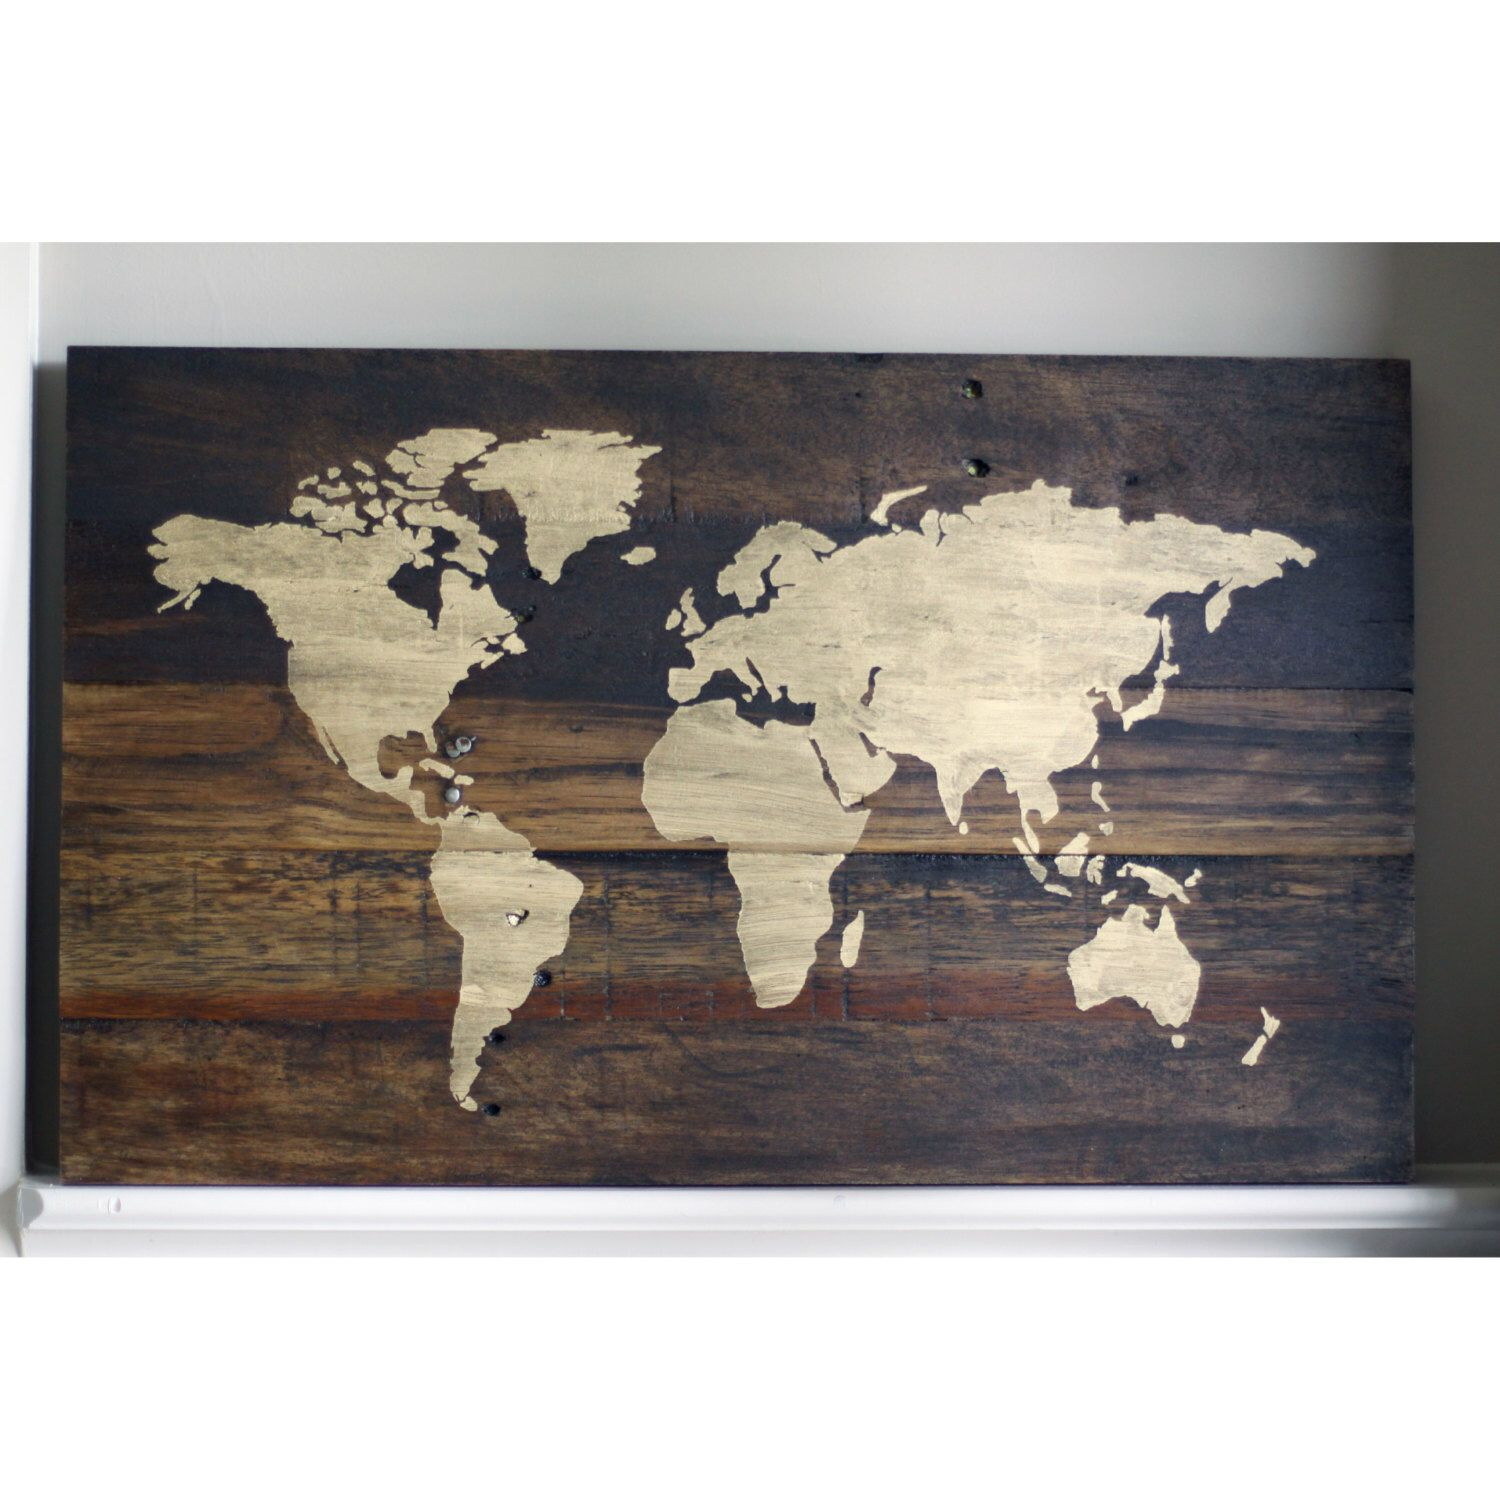 Rustic world map wood sign with upgrade by hammerandlaceinc on etsy rustic world map wood sign with upgrade by hammerandlaceinc on etsy httpsetsylisting201033854rustic world map wood sign with upgrade gumiabroncs Choice Image